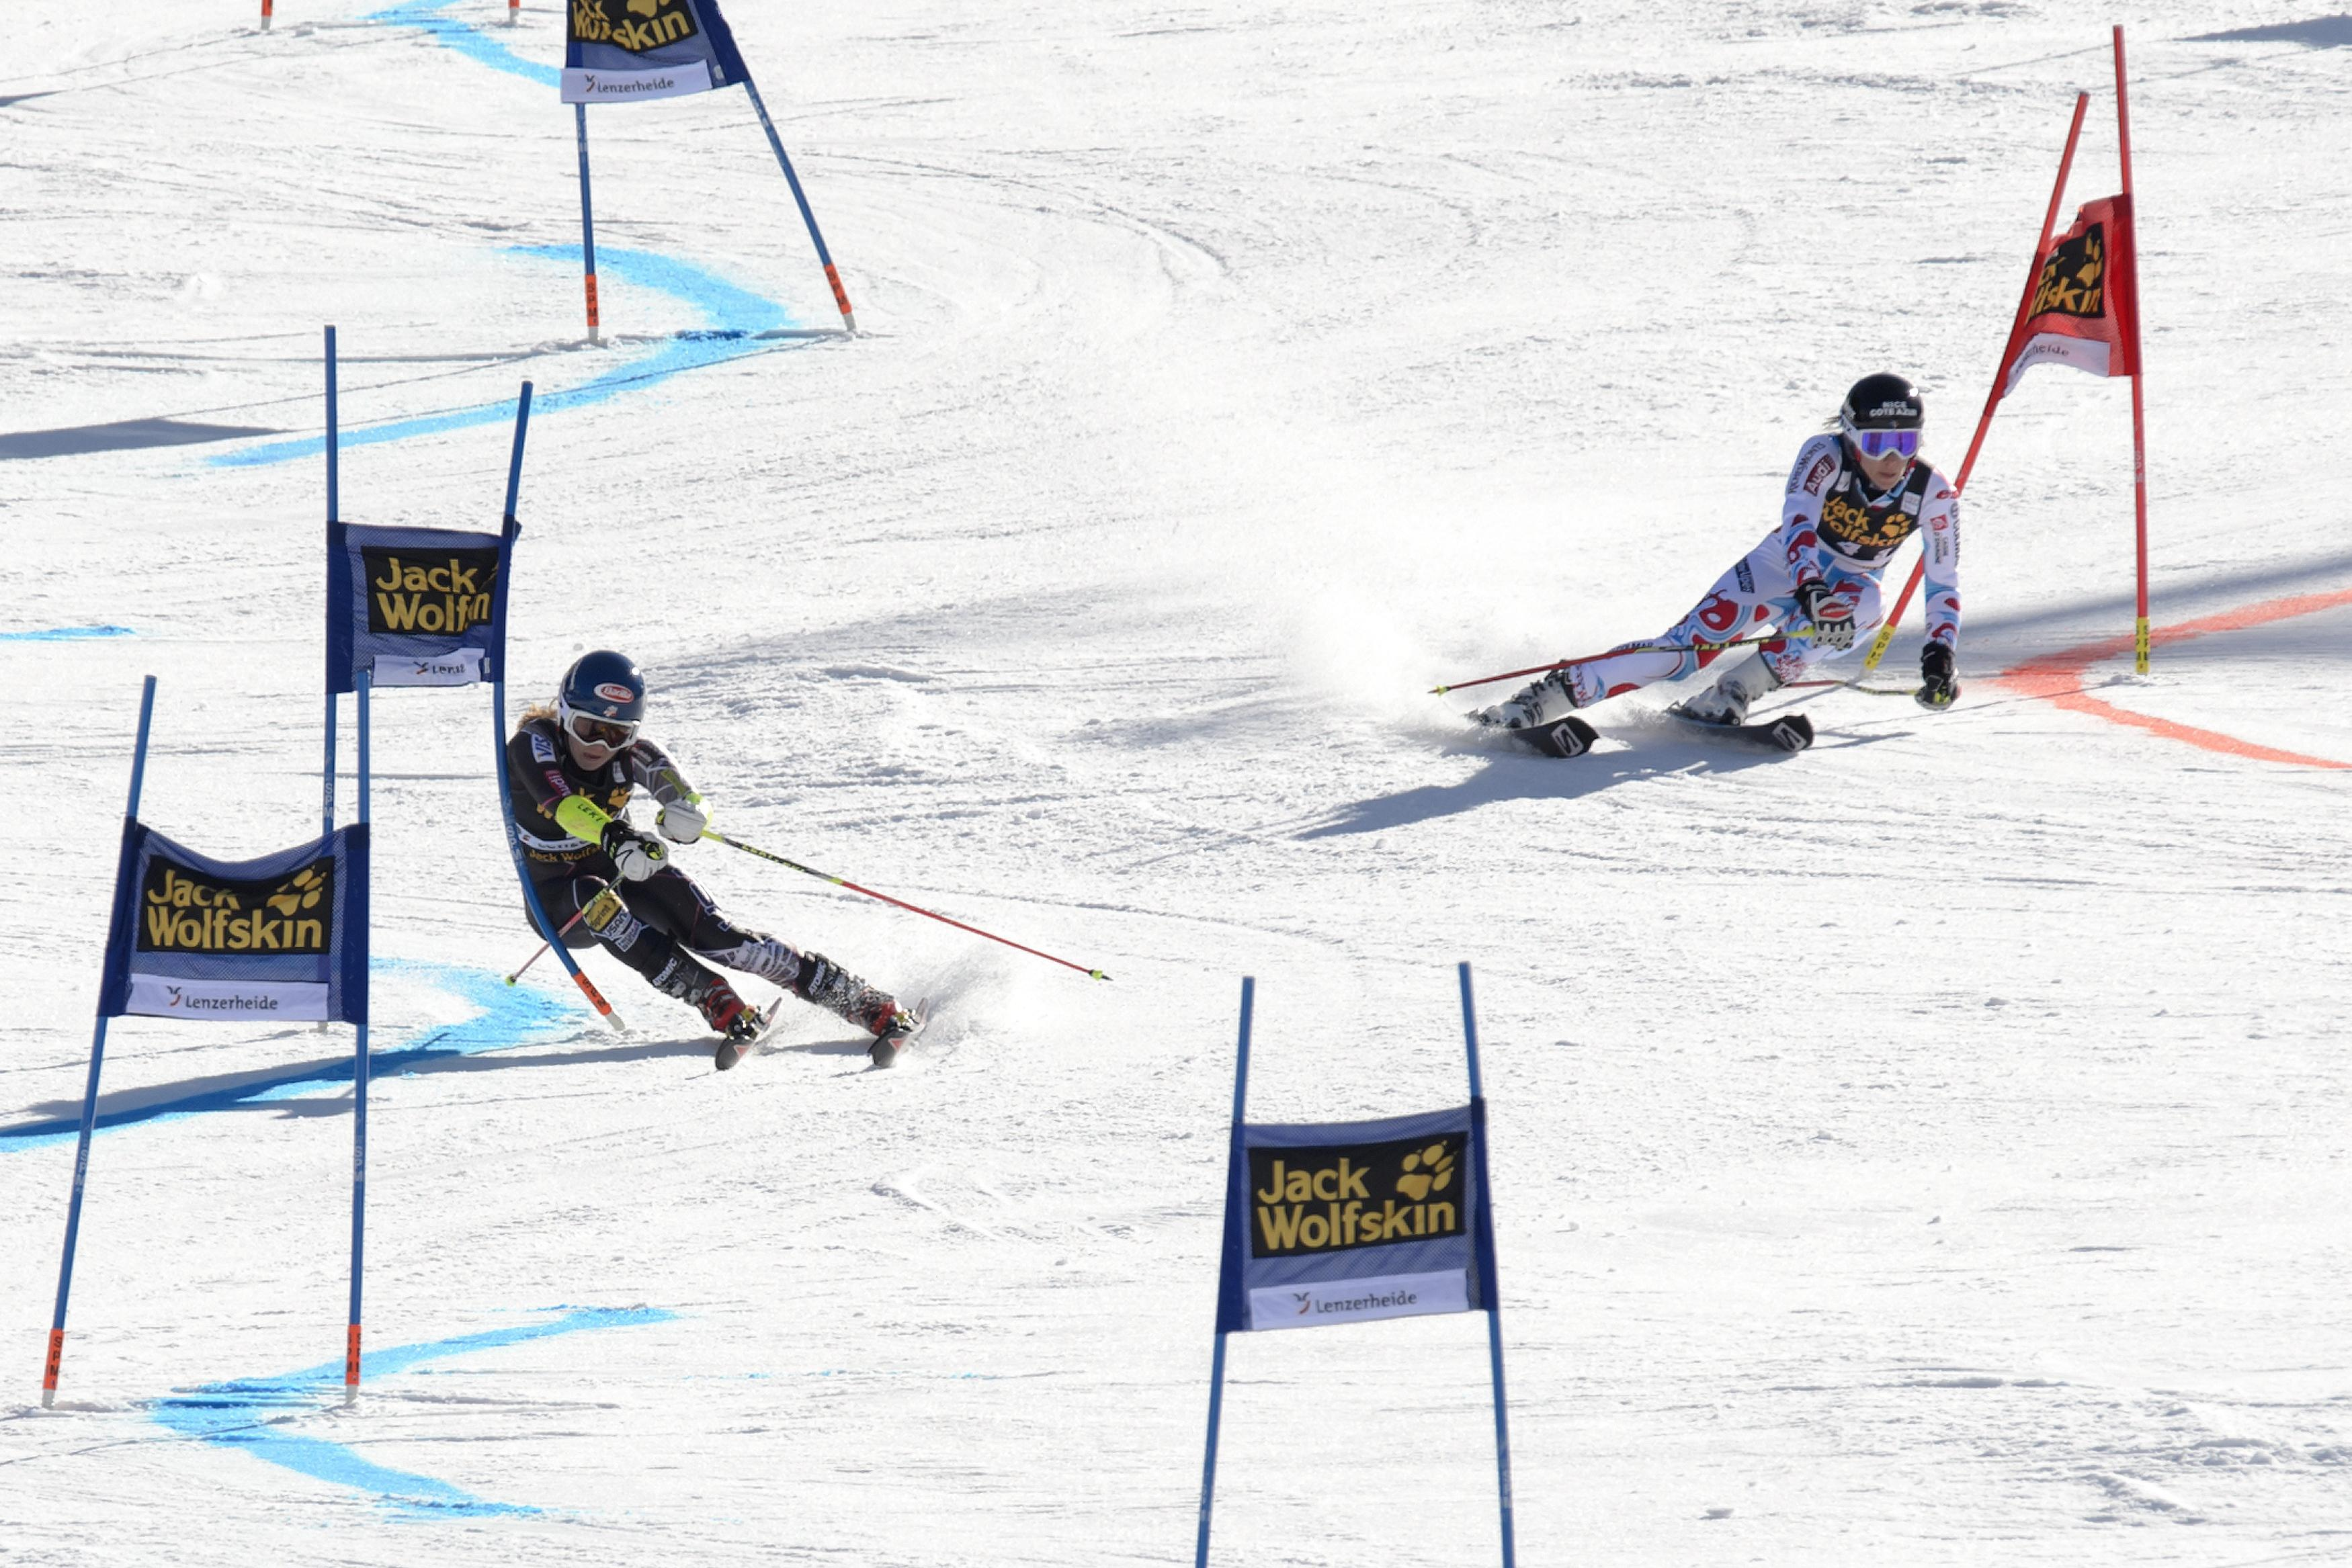 US Mikaela Shiffrin (L) competes with France's Nastasia Noens during the nation team event at the Alpine Skiing World Cup finals on March 14, 2014 in Lenzerheide. Switzerland beat the United States to win the mixed team event at the World Cup finals on home snow at Lenzerheide.   AFP PHOTO / FABRICE COFFRINI        (Photo credit should read FABRICE COFFRINI/AFP/Getty Images)